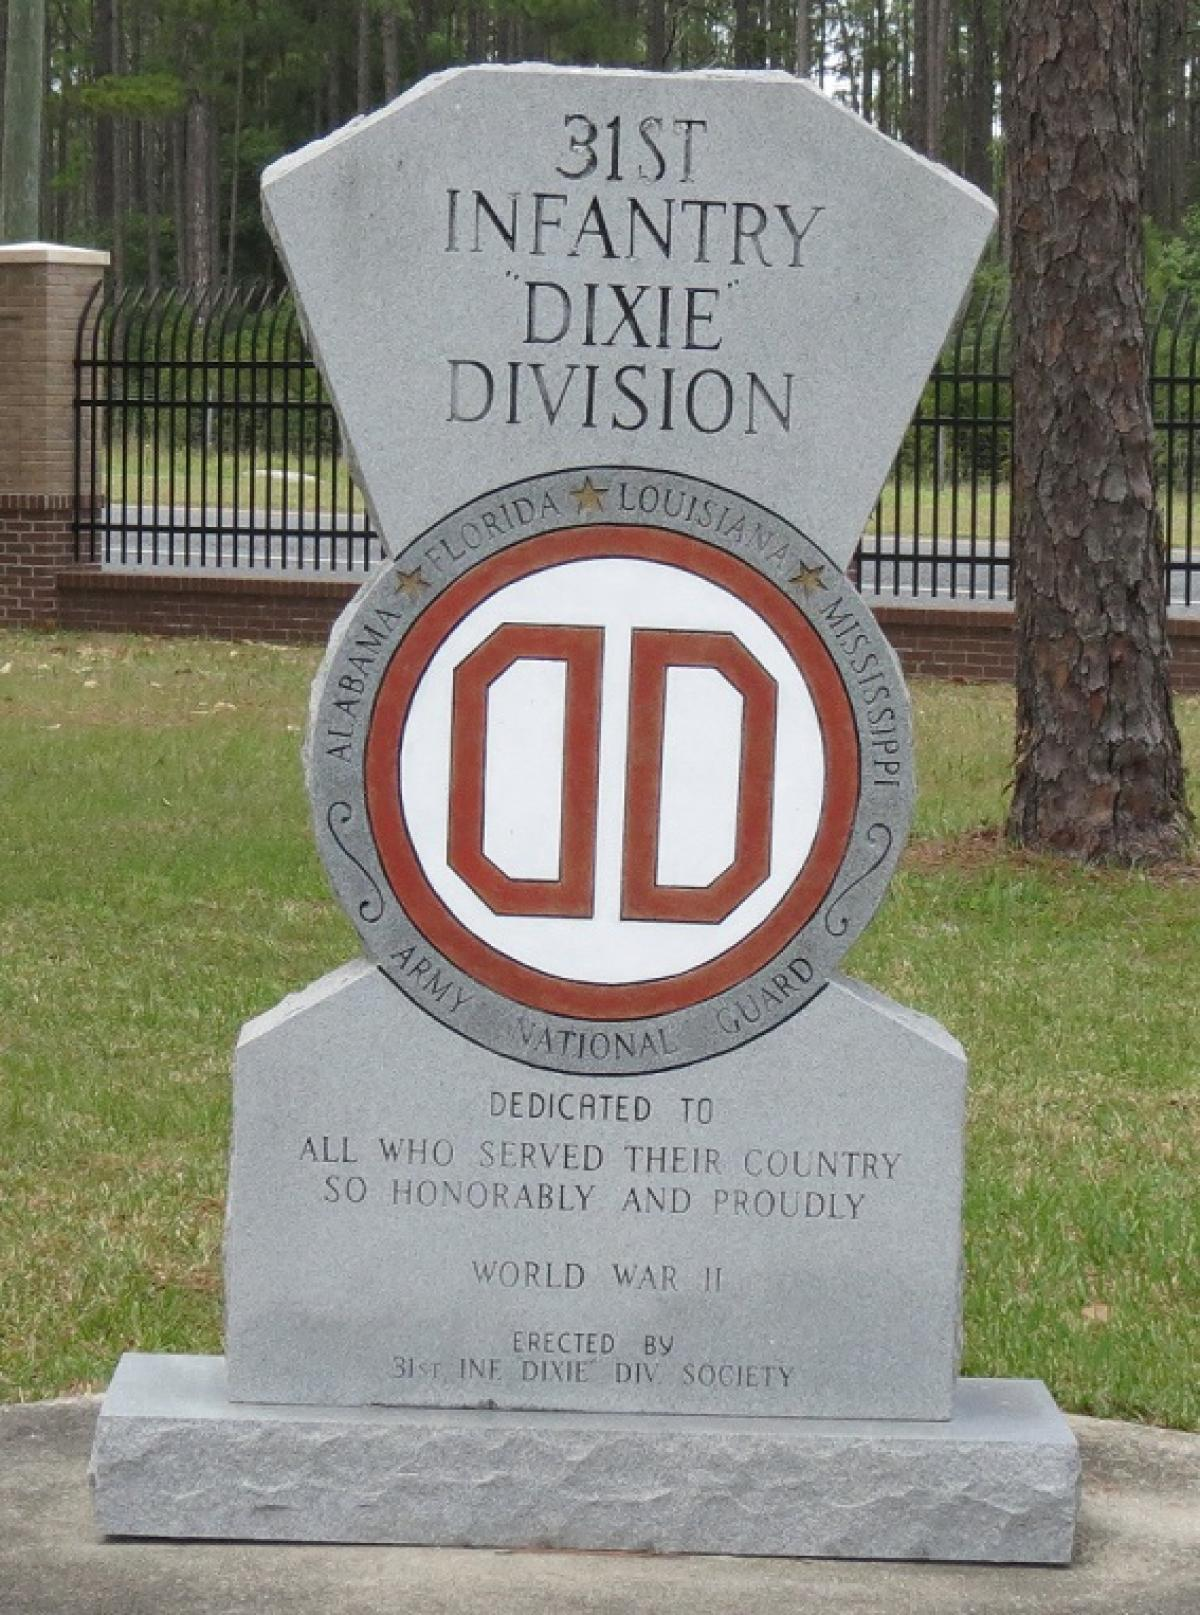 United states army 31st infantry division dixie city of grove ok grove headstone symbols and meanings u s army 31st infantry dixie division buycottarizona